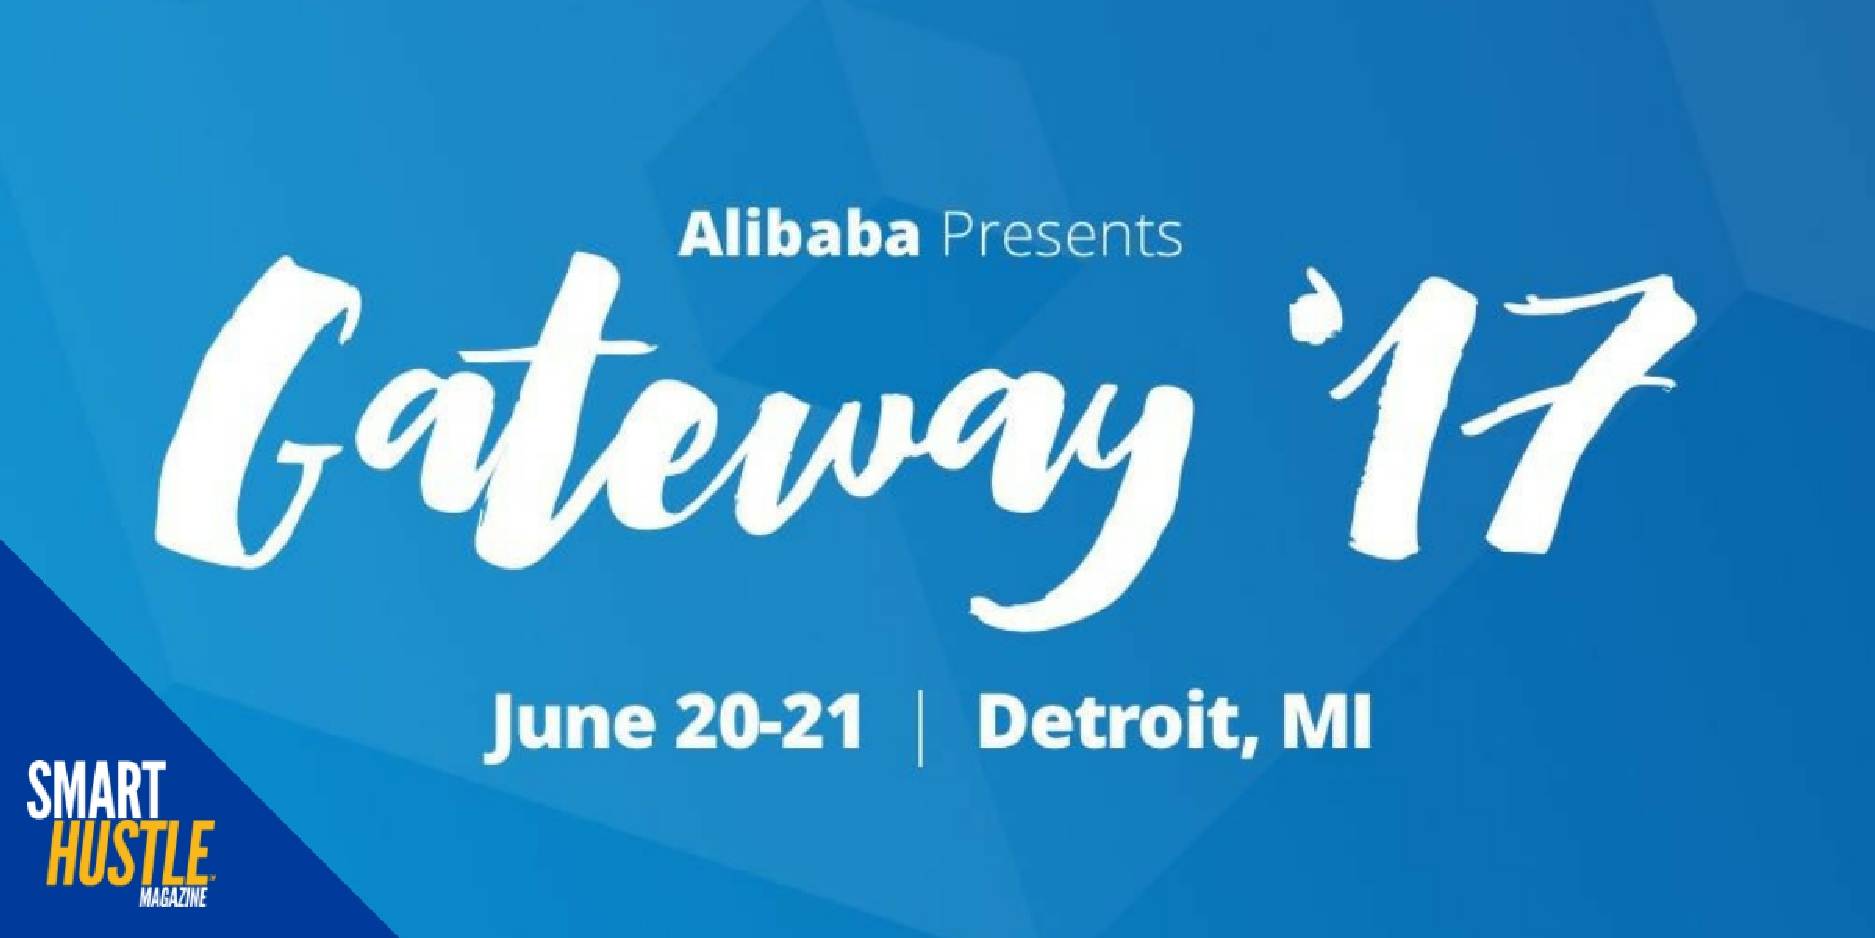 Gateway '17: Alibaba's Mission to Help Small Business Owners Expand Globally